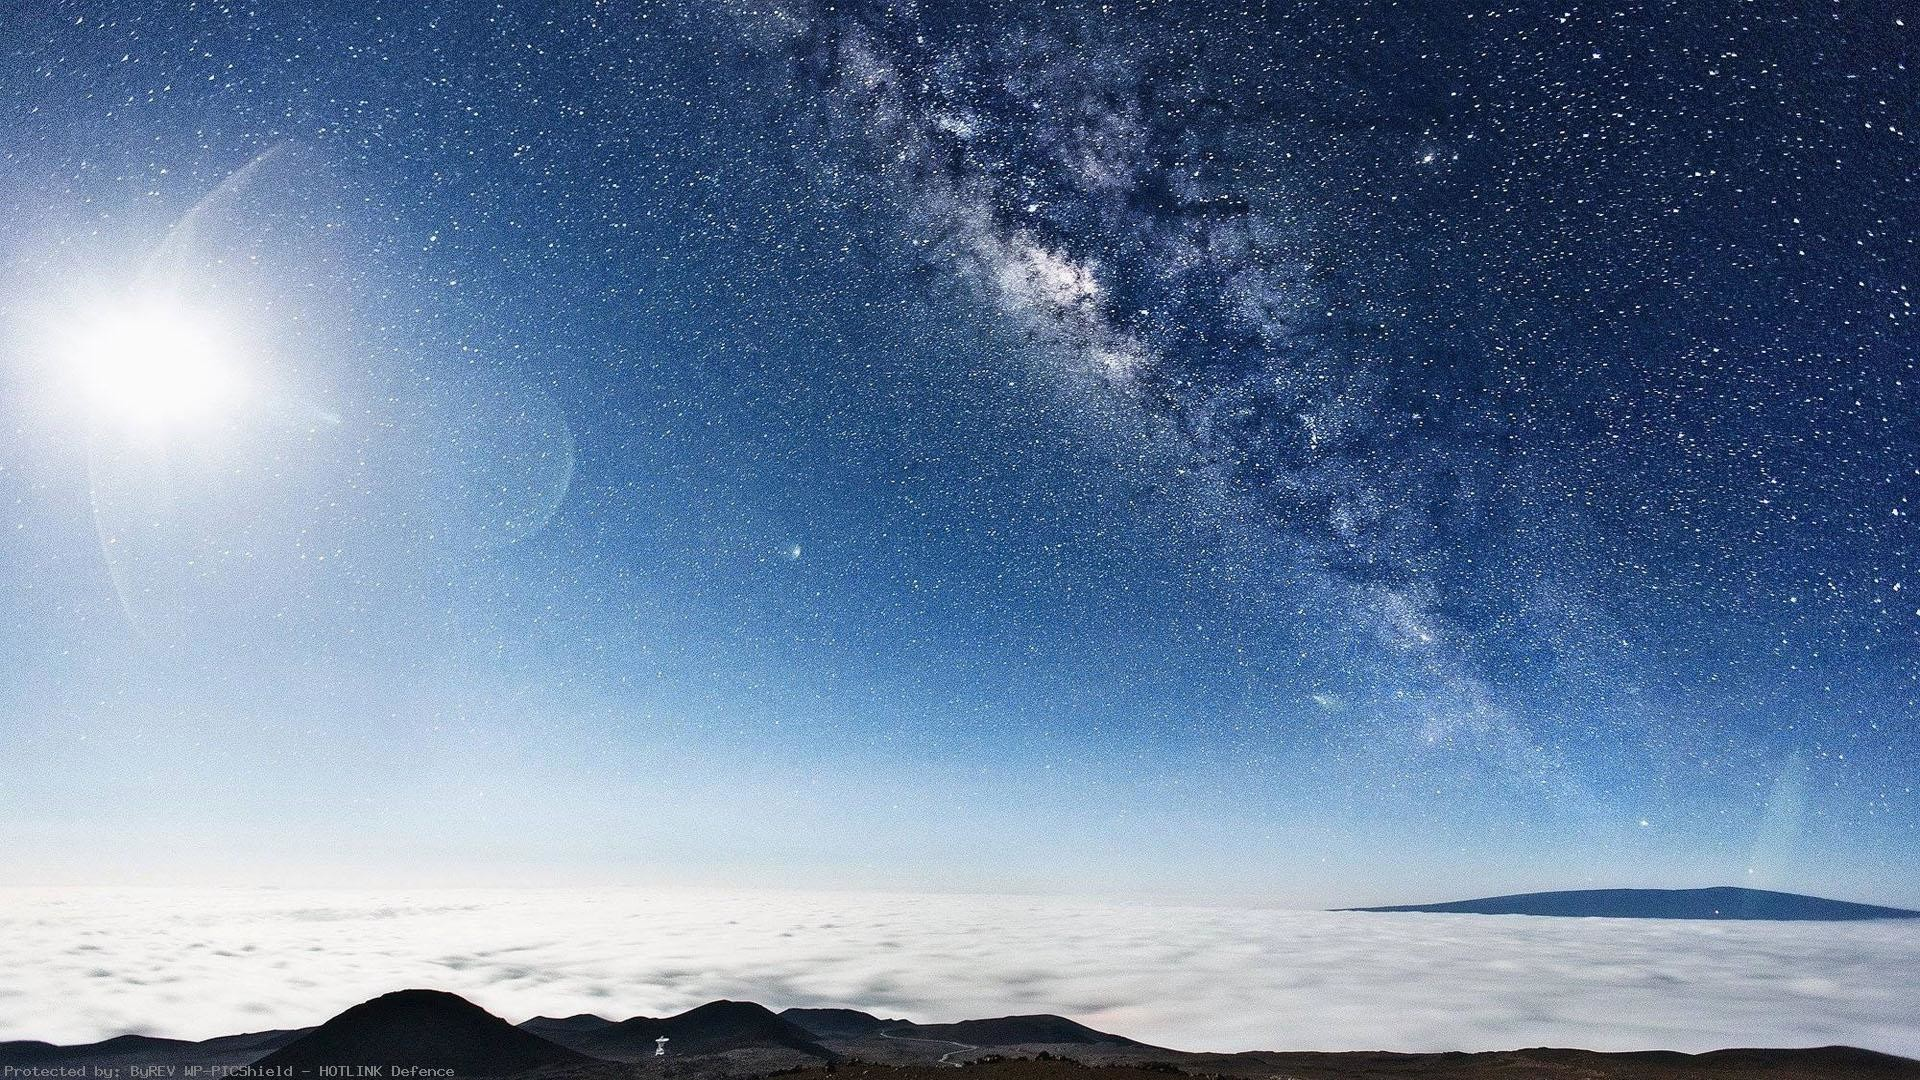 The-Milky-Way-seen-from-the-top-of-